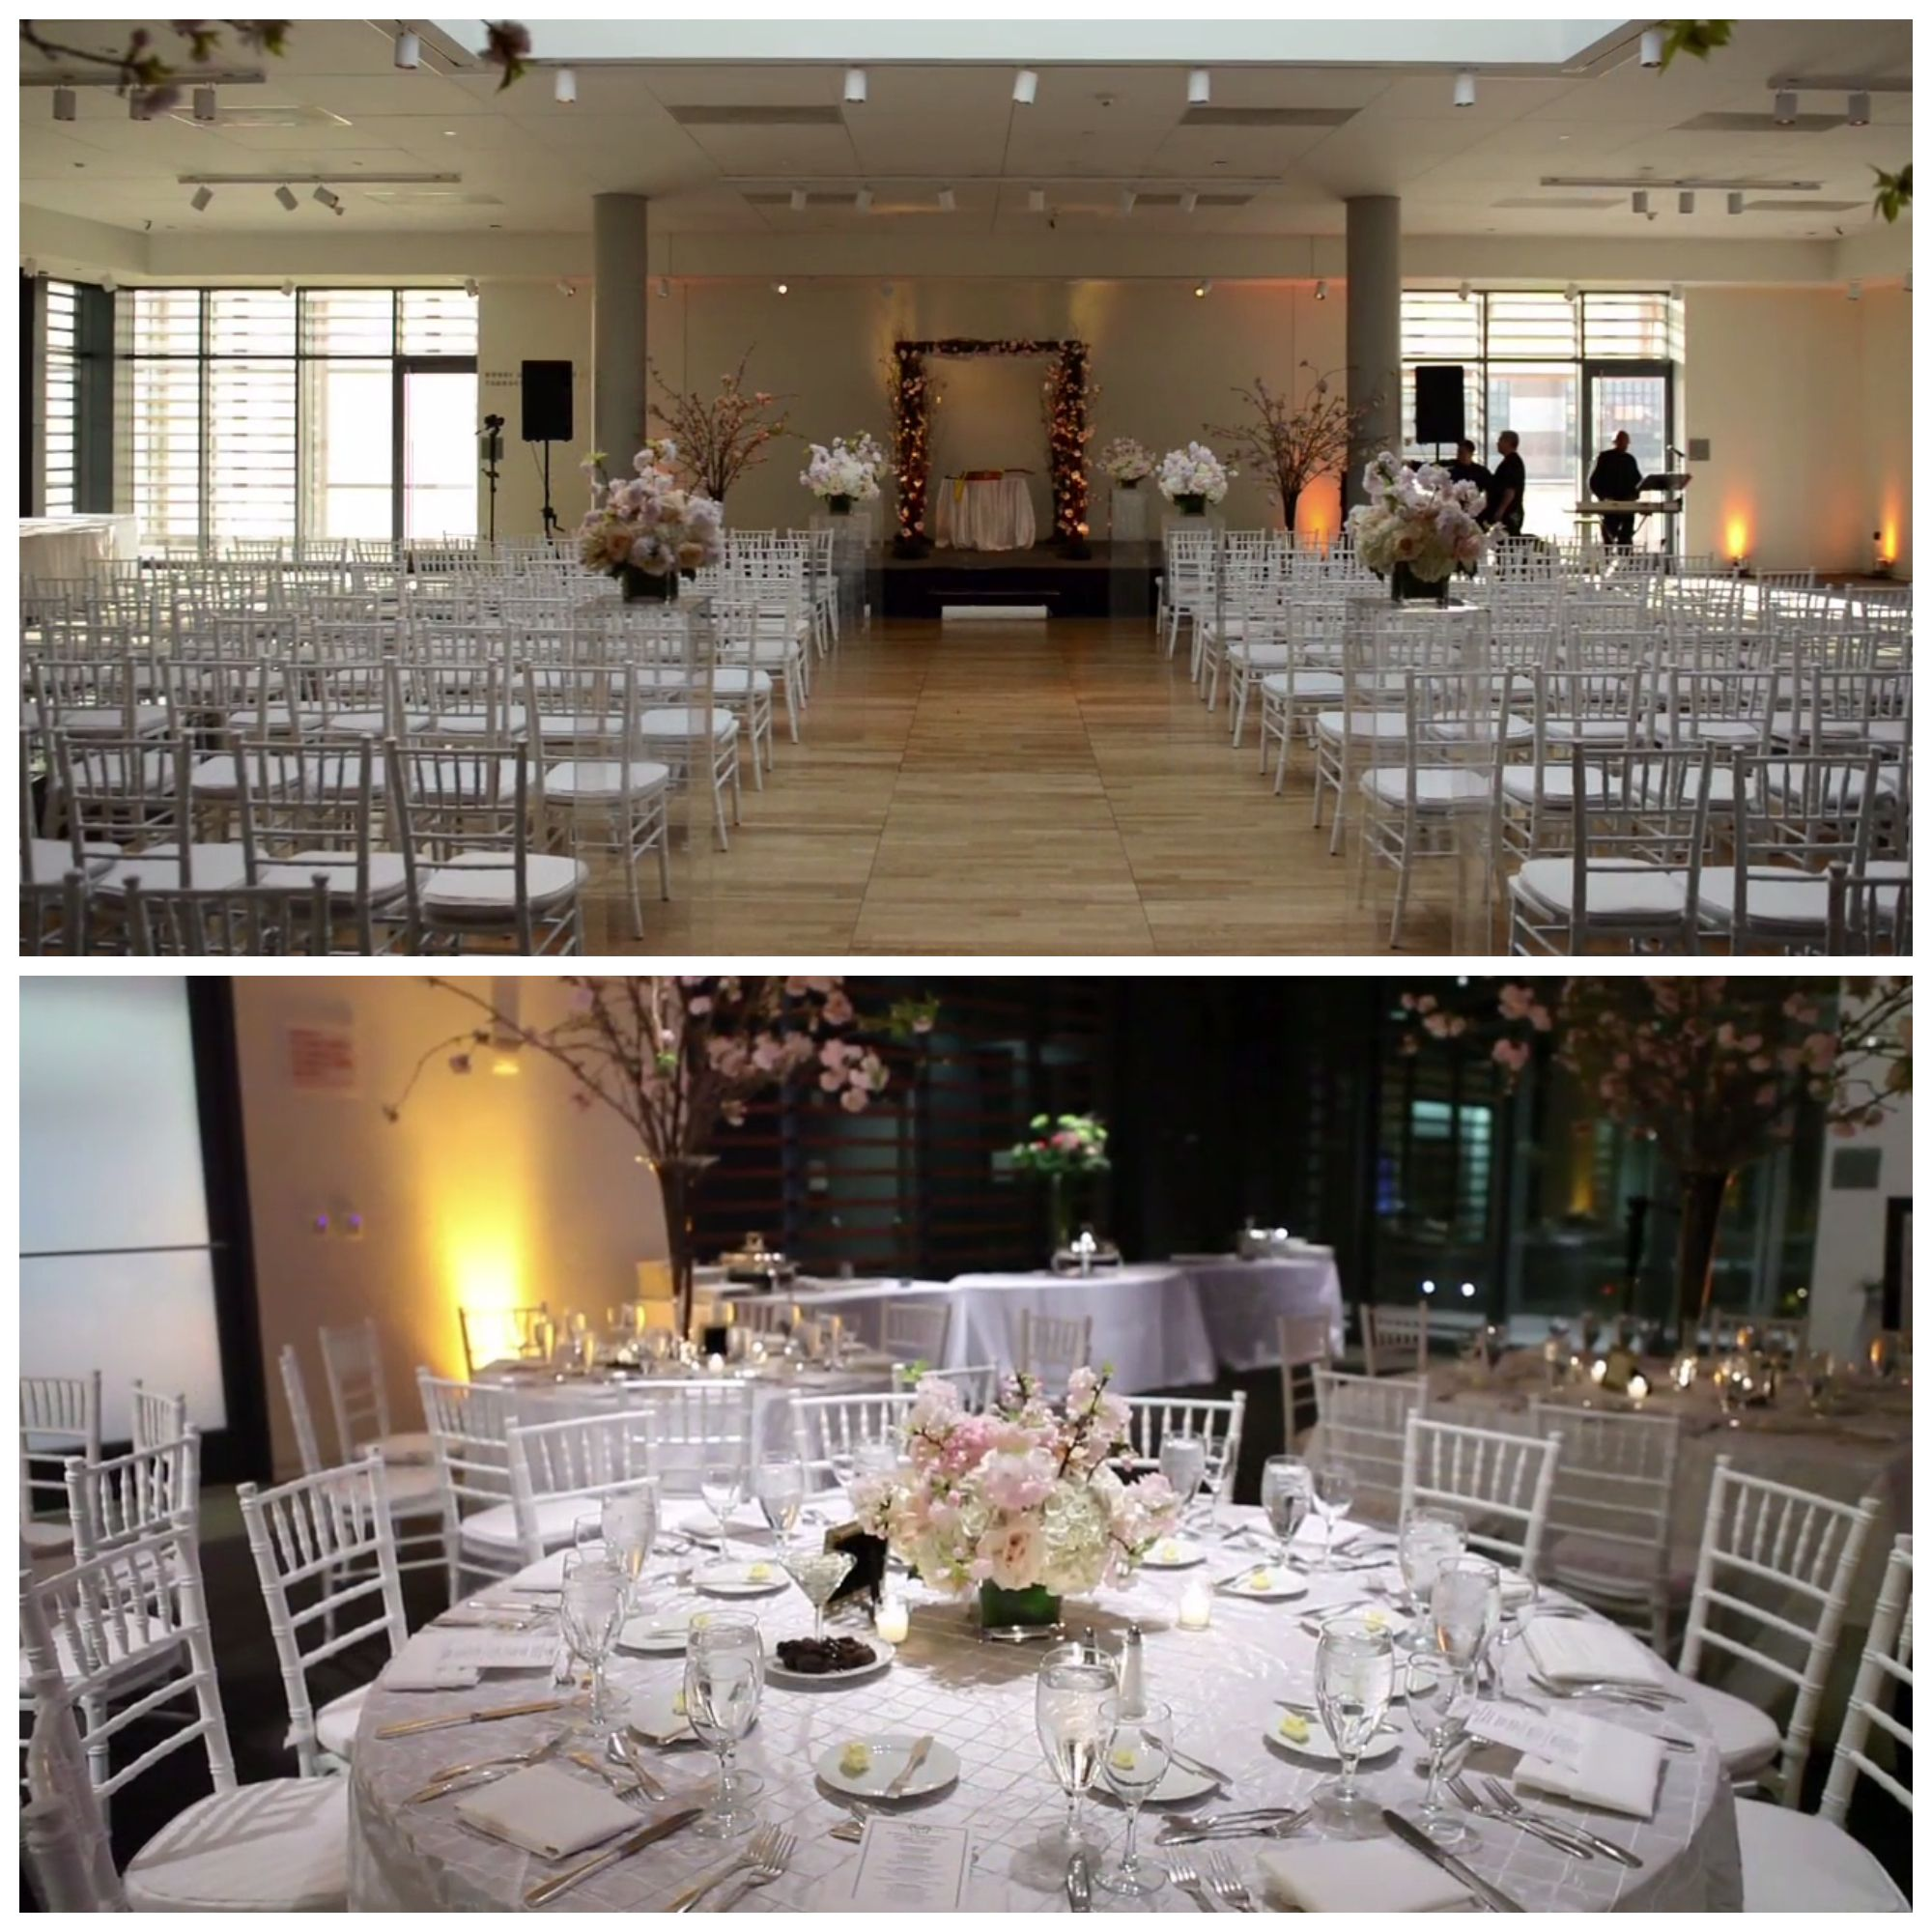 Dara & Marc's Philadelphia wedding took place at The National Museum of American Jewish History. Here is a preview from their big day: http://allurefilms.com/dara-marc-2/  #PhiladelphiaWedding #PhiladelphiaWeddingVenues #PhiladelphiaWeddingLocations #NMAJHWedding #NMAJH #NationalMuseumofAmericanJewishHistoryWedding #National Museum of American Jewish History Wedding #AllureFilms